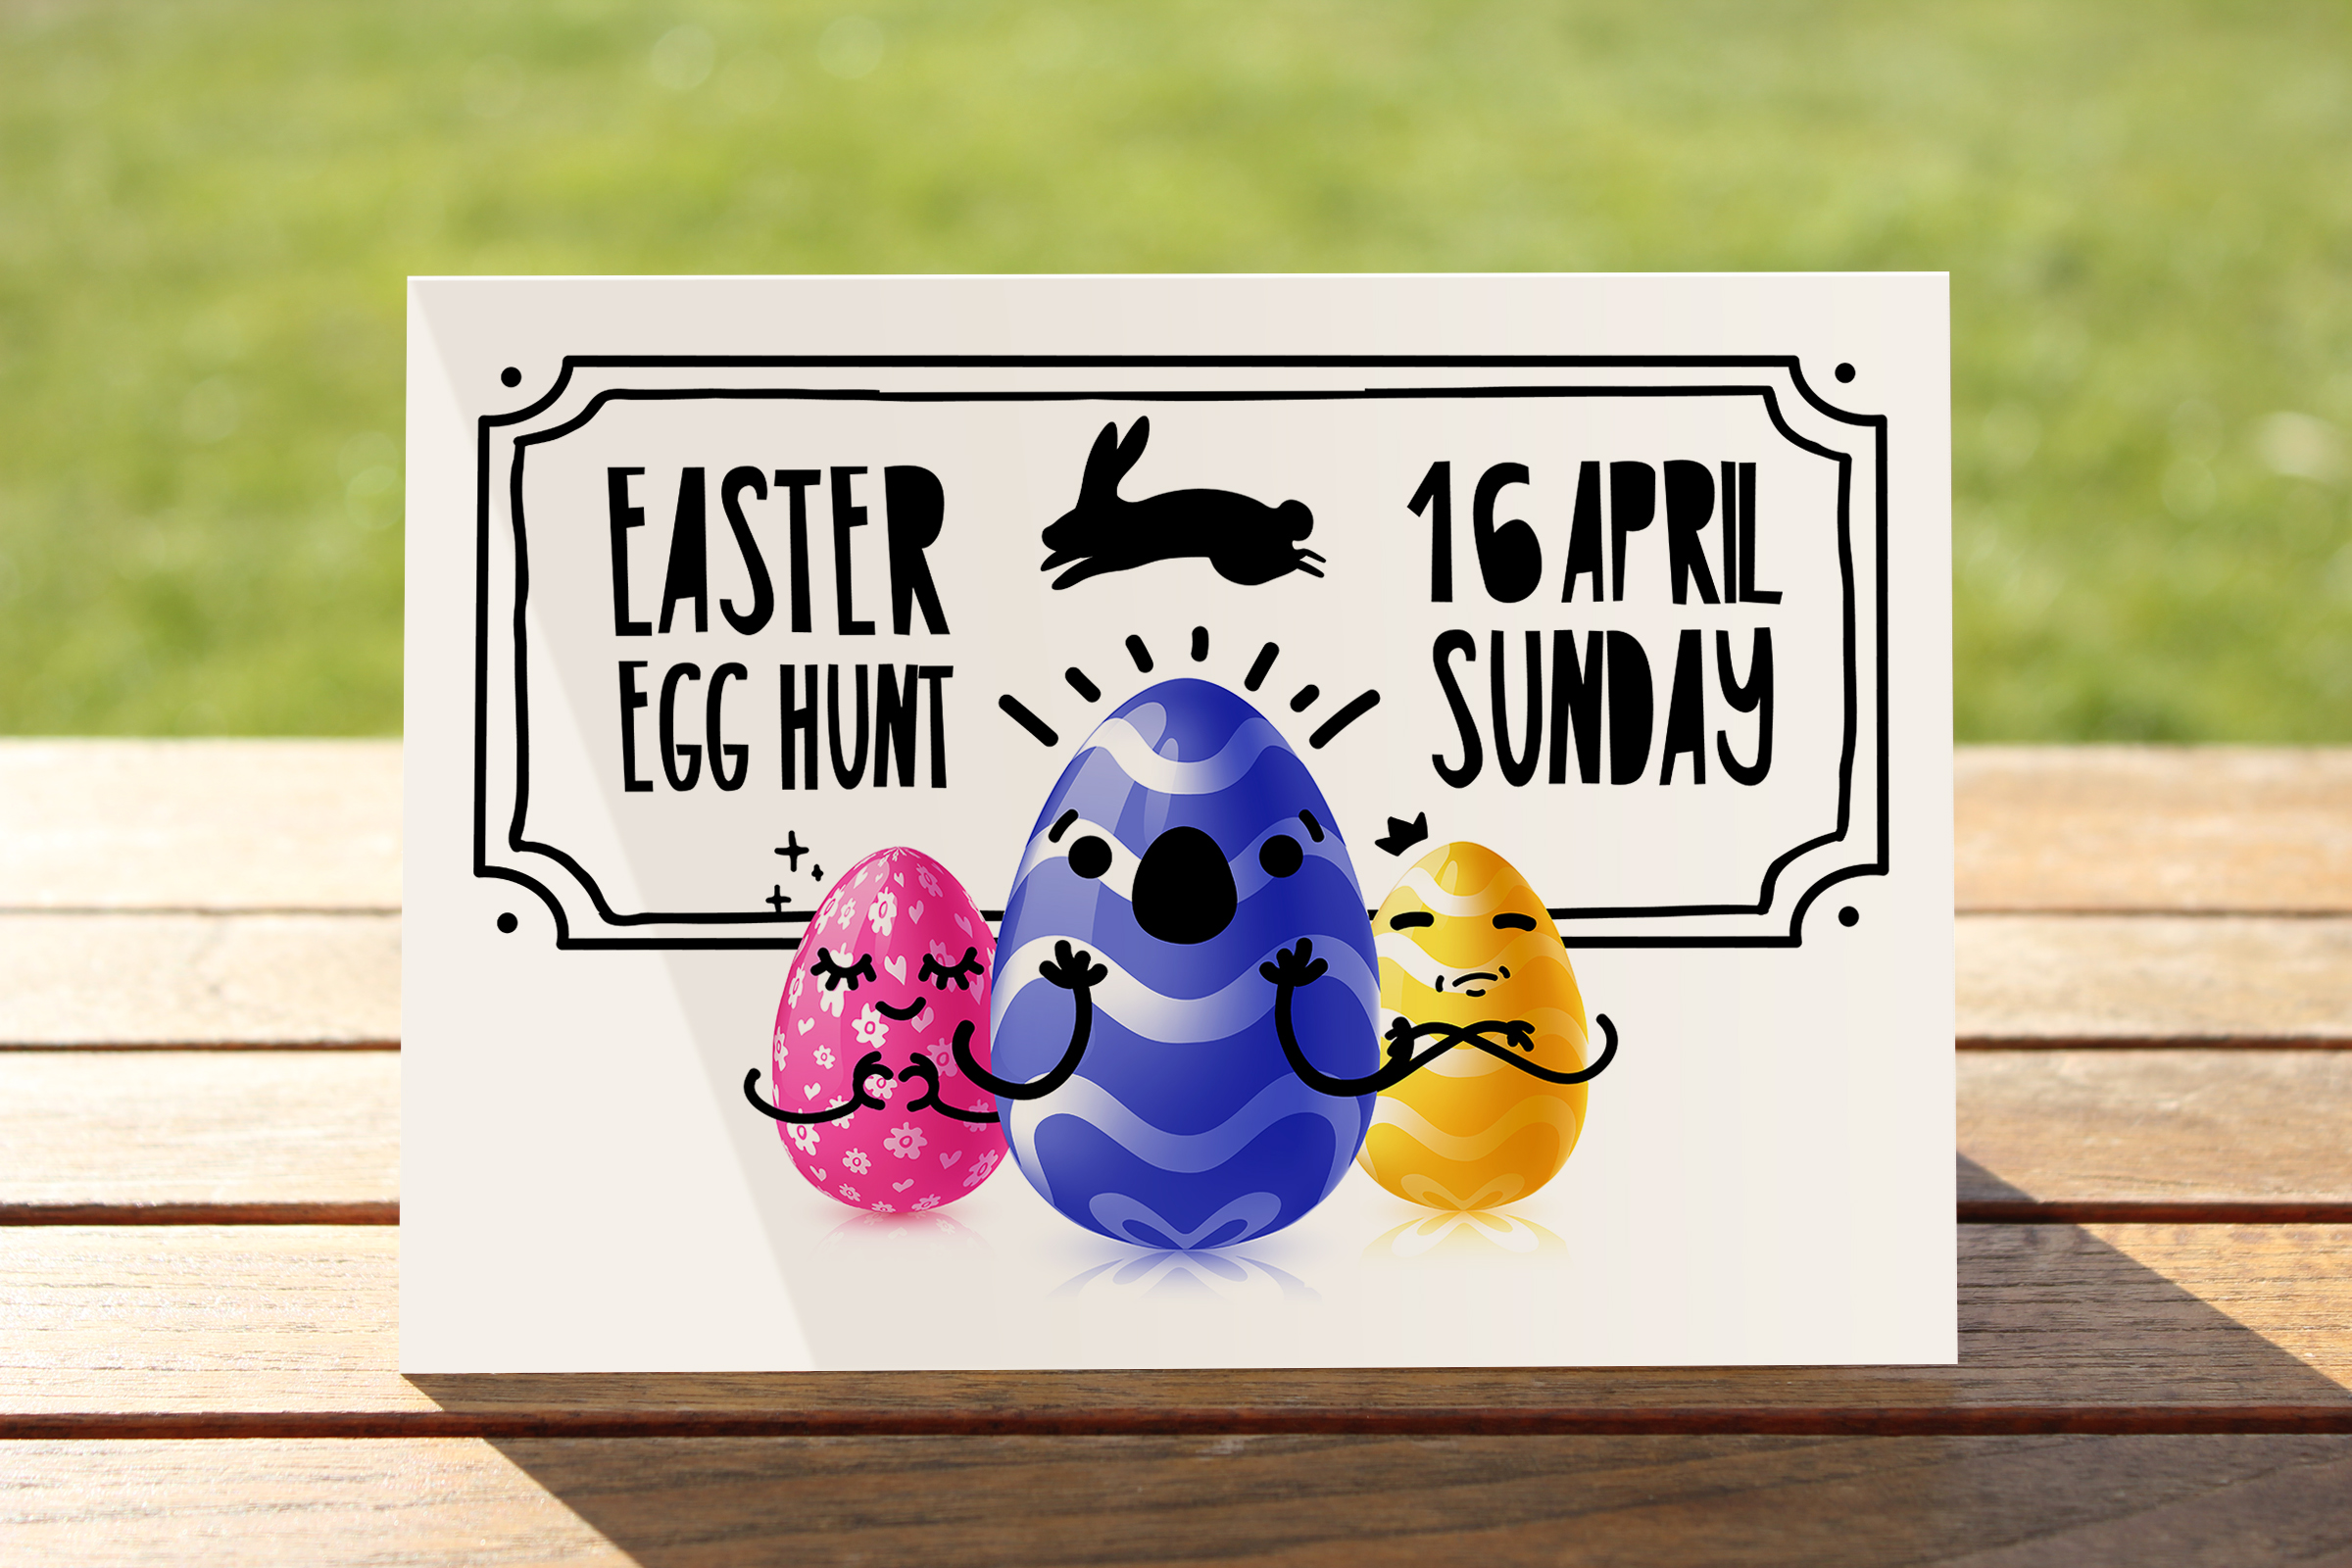 Collection of Easter eggs character example image 4